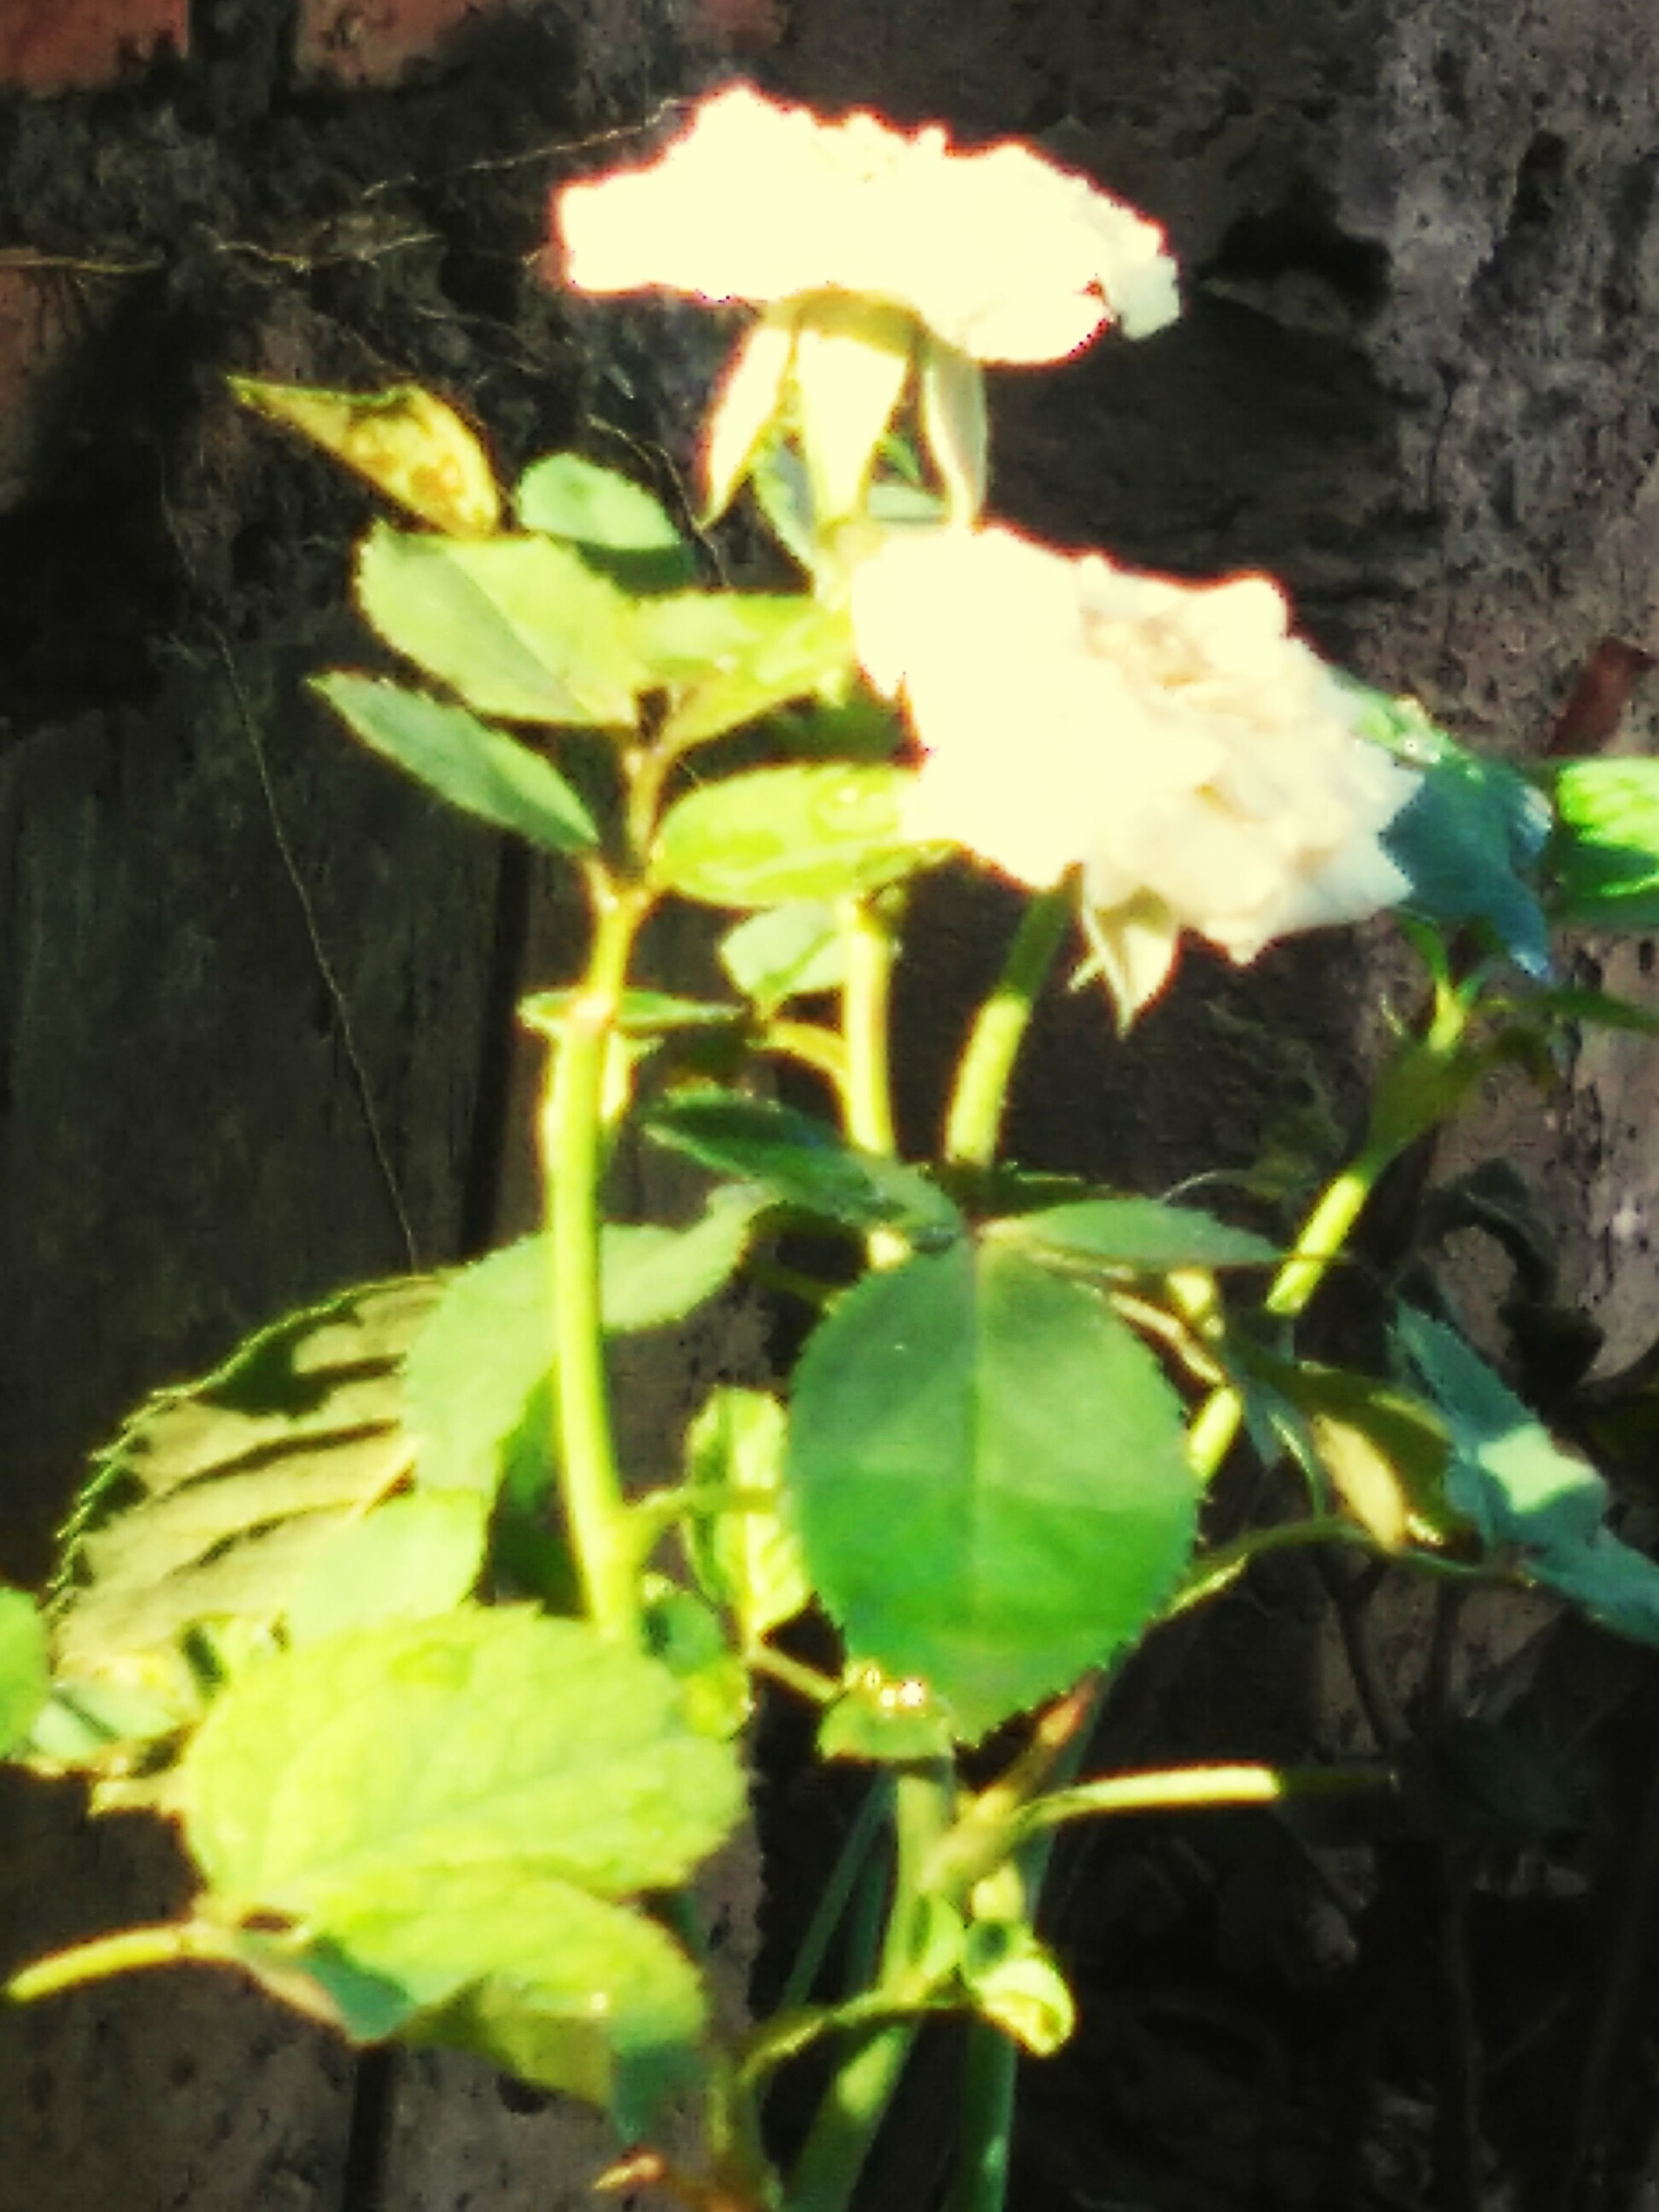 leaf, growth, plant, green color, close-up, nature, sunlight, beauty in nature, growing, focus on foreground, night, outdoors, freshness, no people, fragility, tranquility, flower, stem, sunbeam